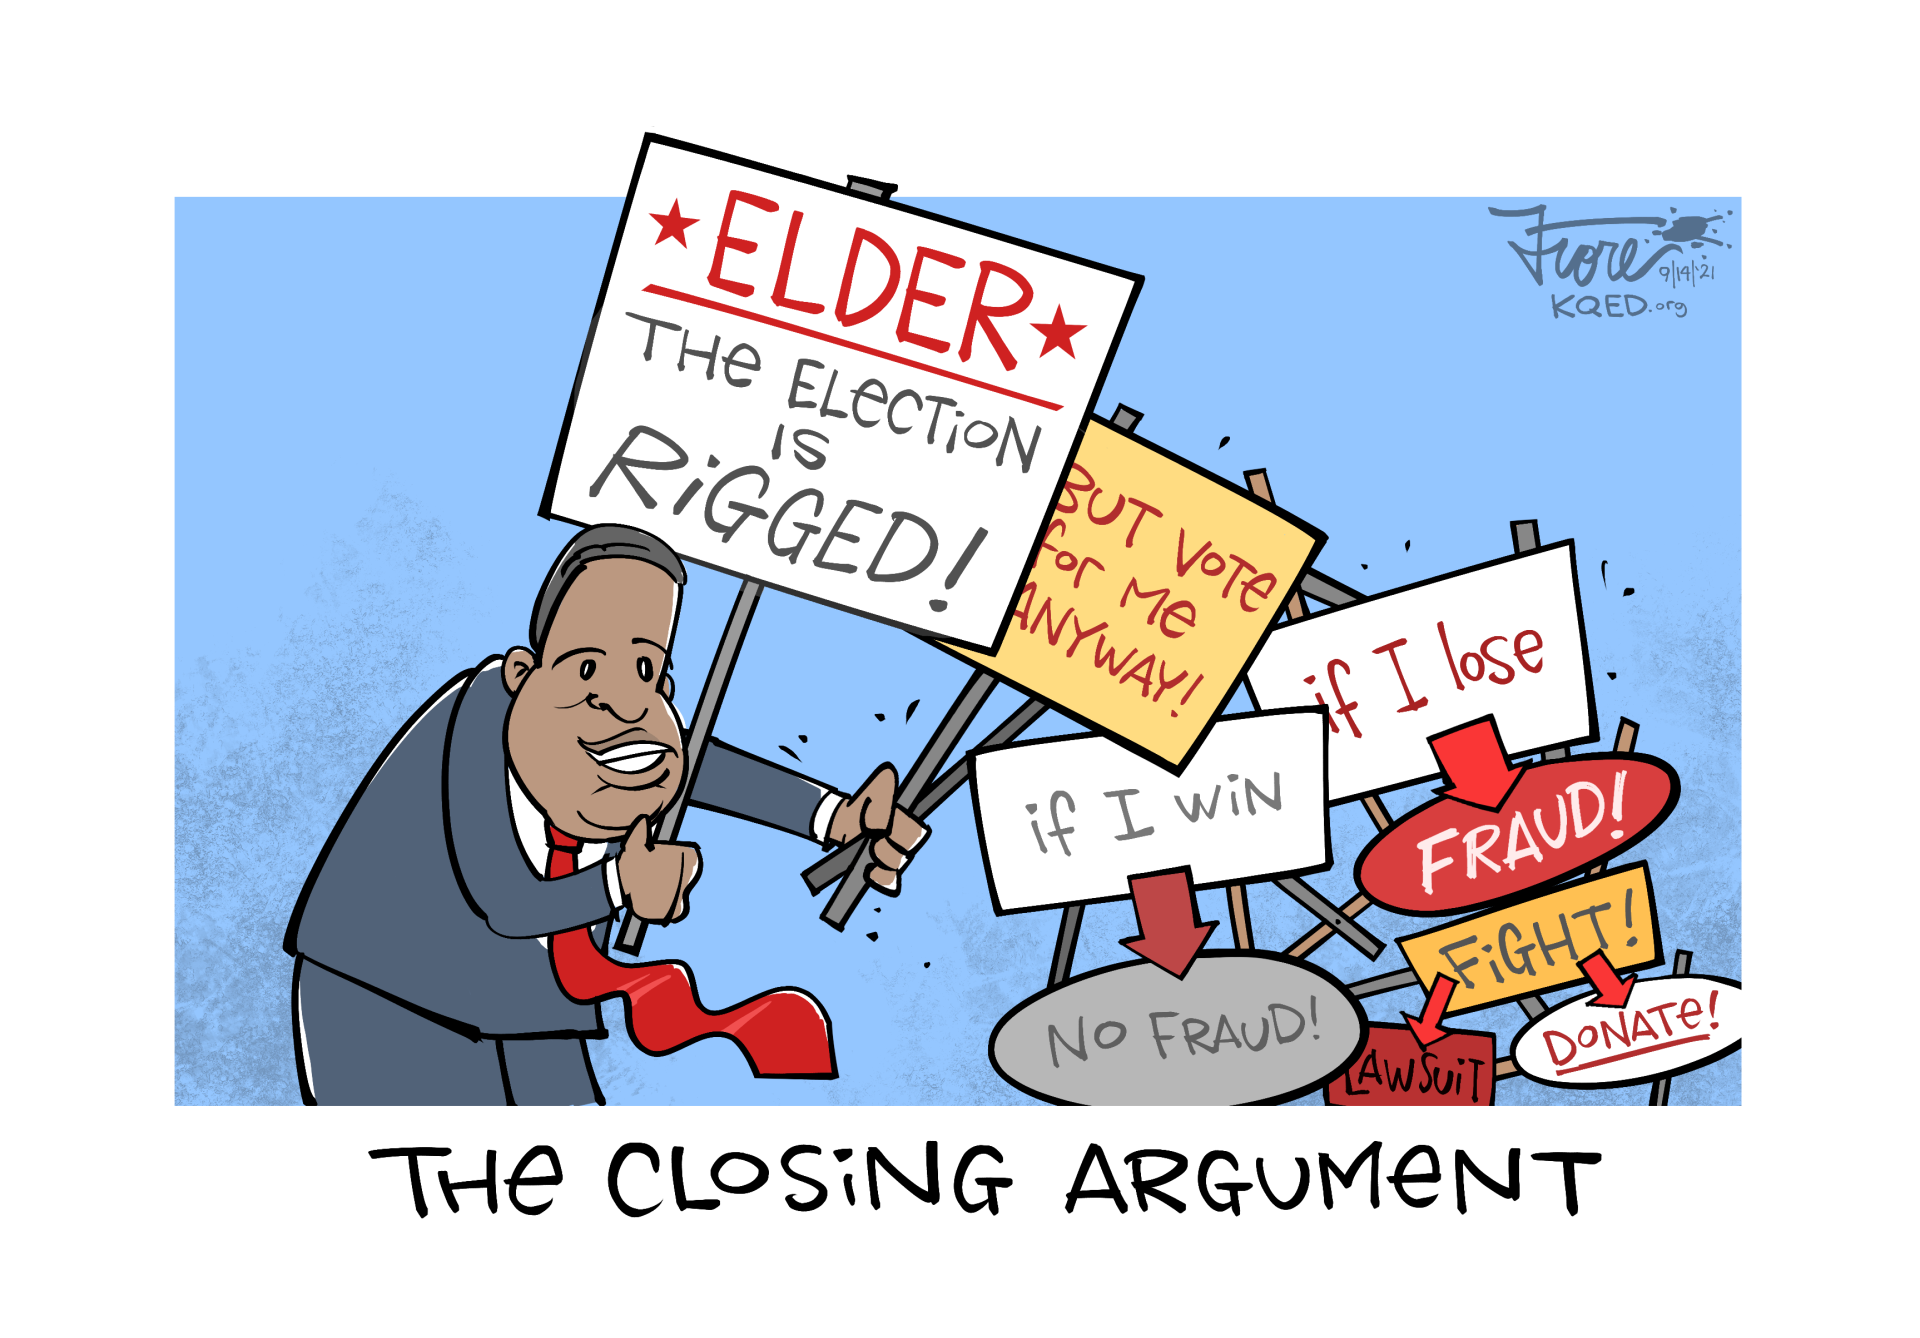 """Cartoon captioned, """"the closing argument,"""" showing Larry Elder with signs that read, """"Elder, the election is rigged...but vote for me anyway."""""""